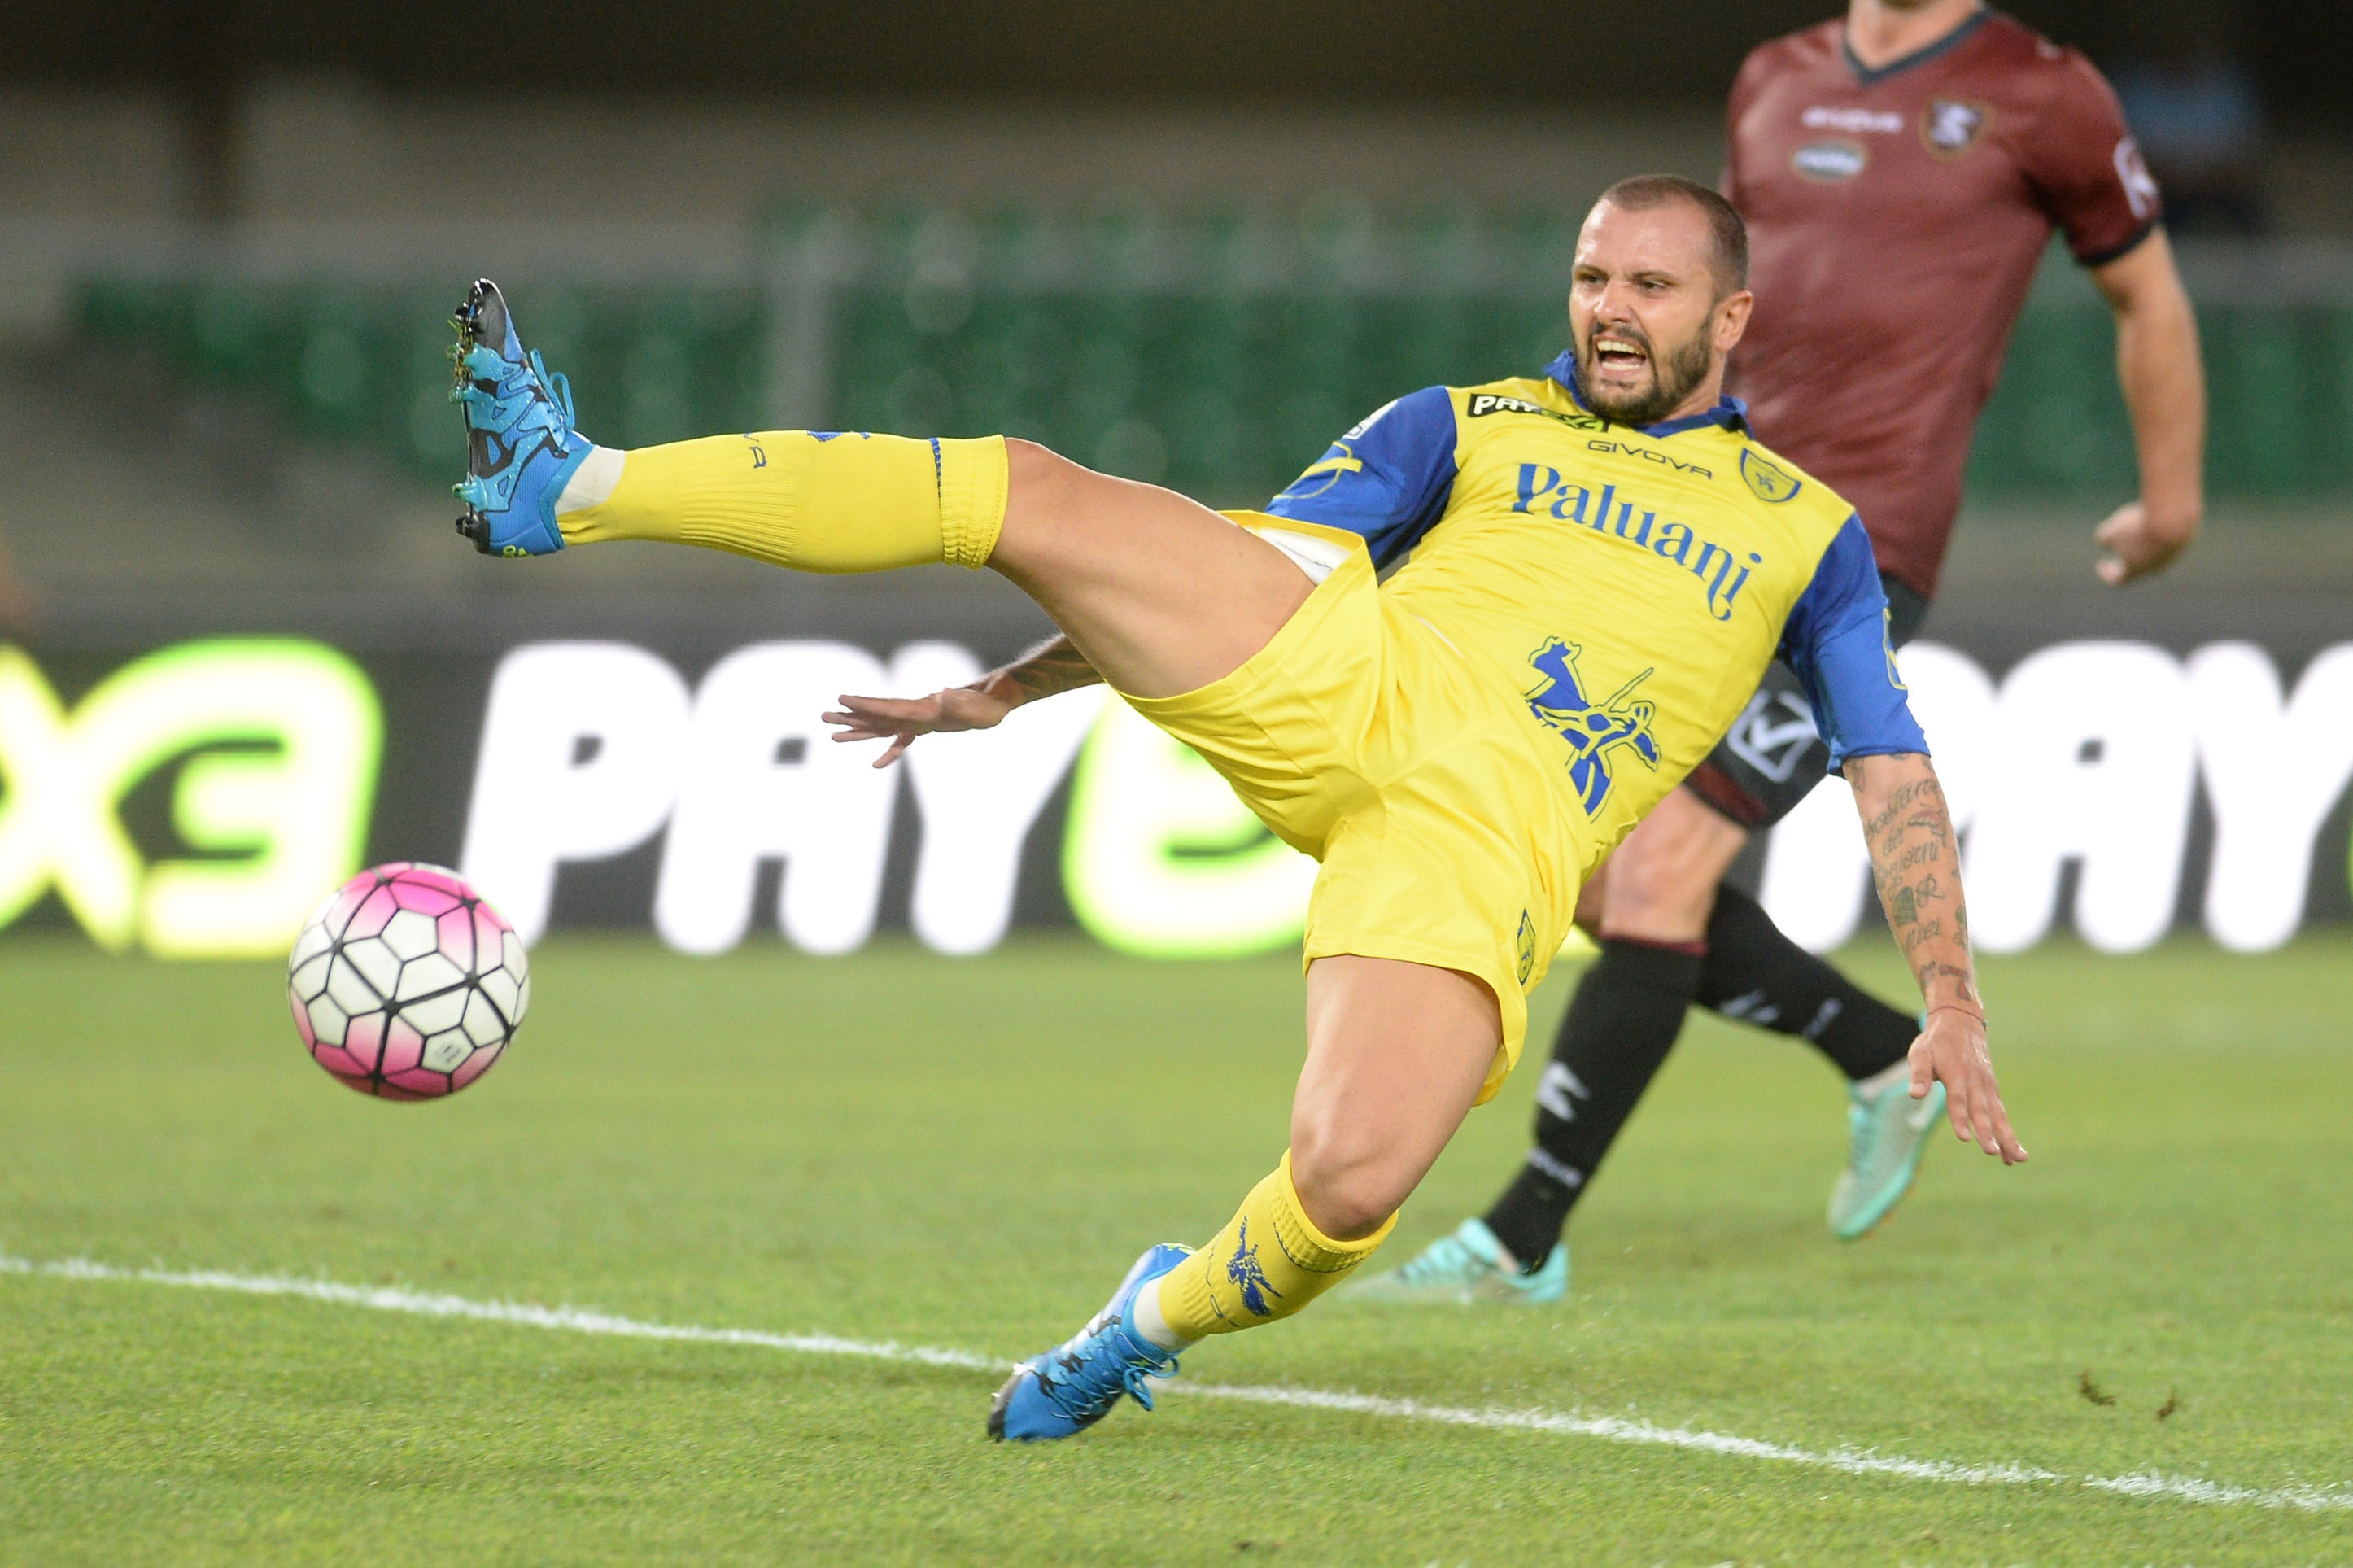 AC Chievo Verona v US Salernitana - TIM Cup